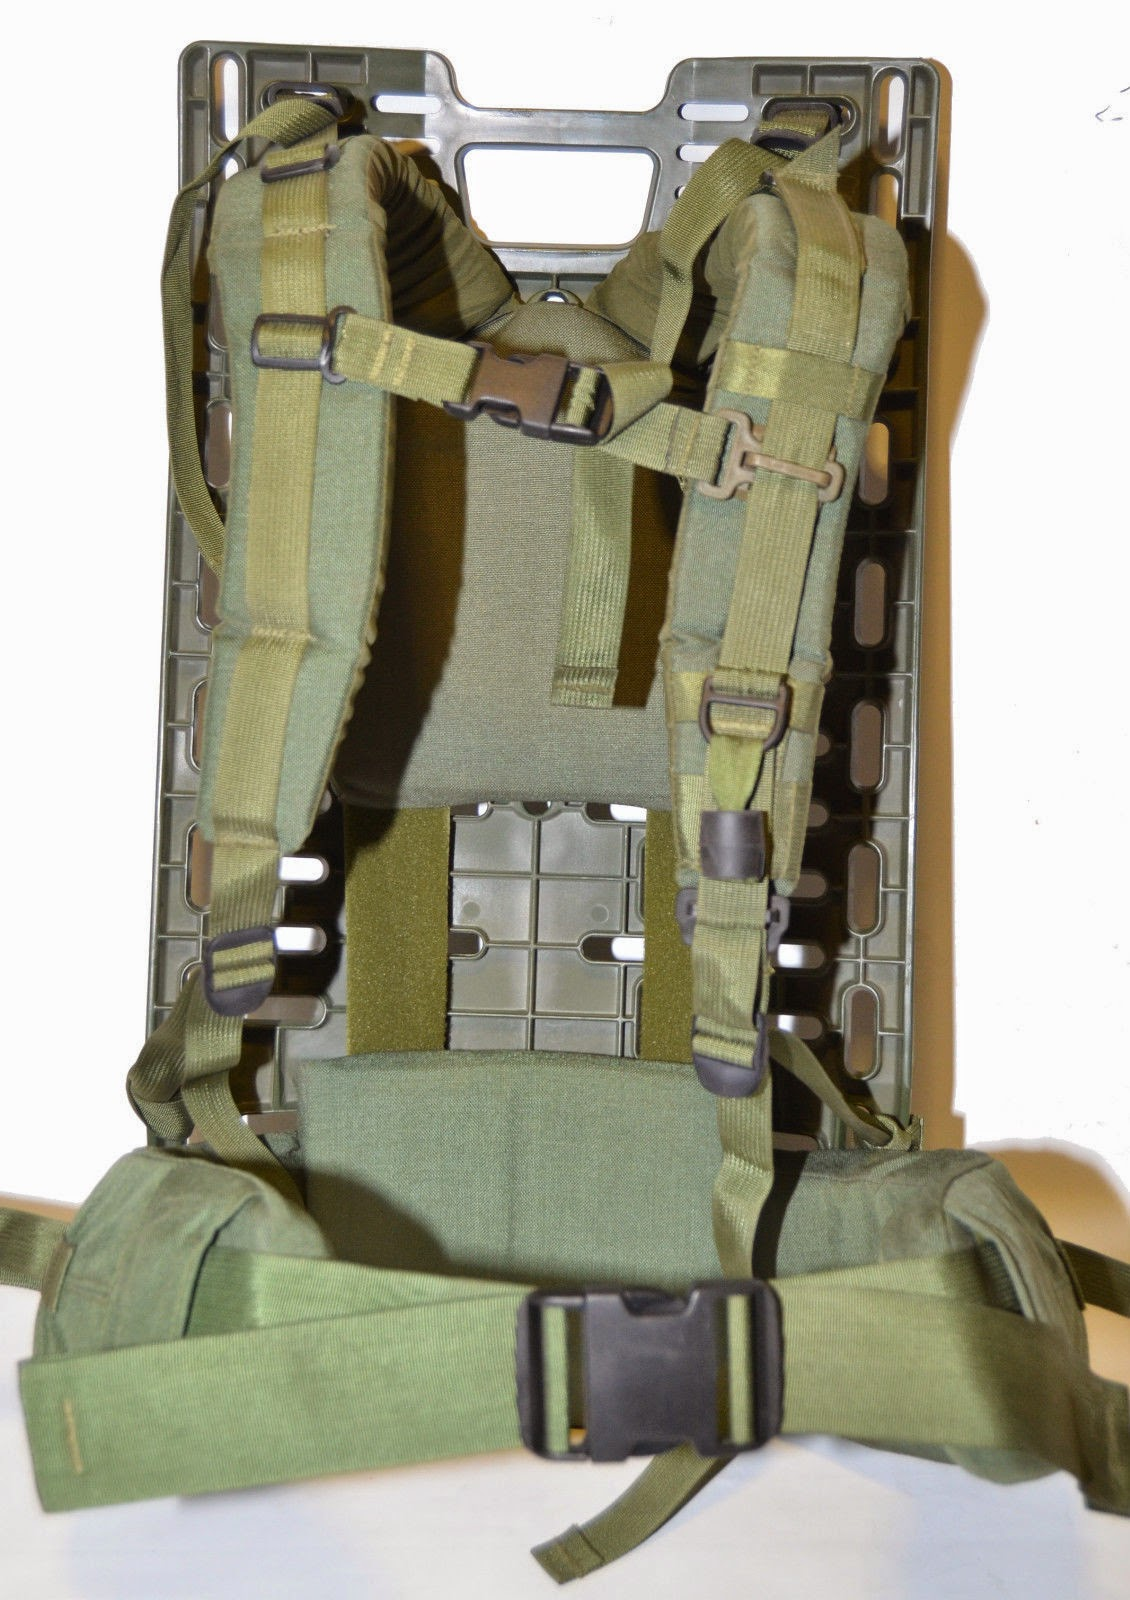 high density plastic very hard to break super strong very similar to the us army rucksack frames measures 255 x 1425 x 12 - Military Rucksack With Frame